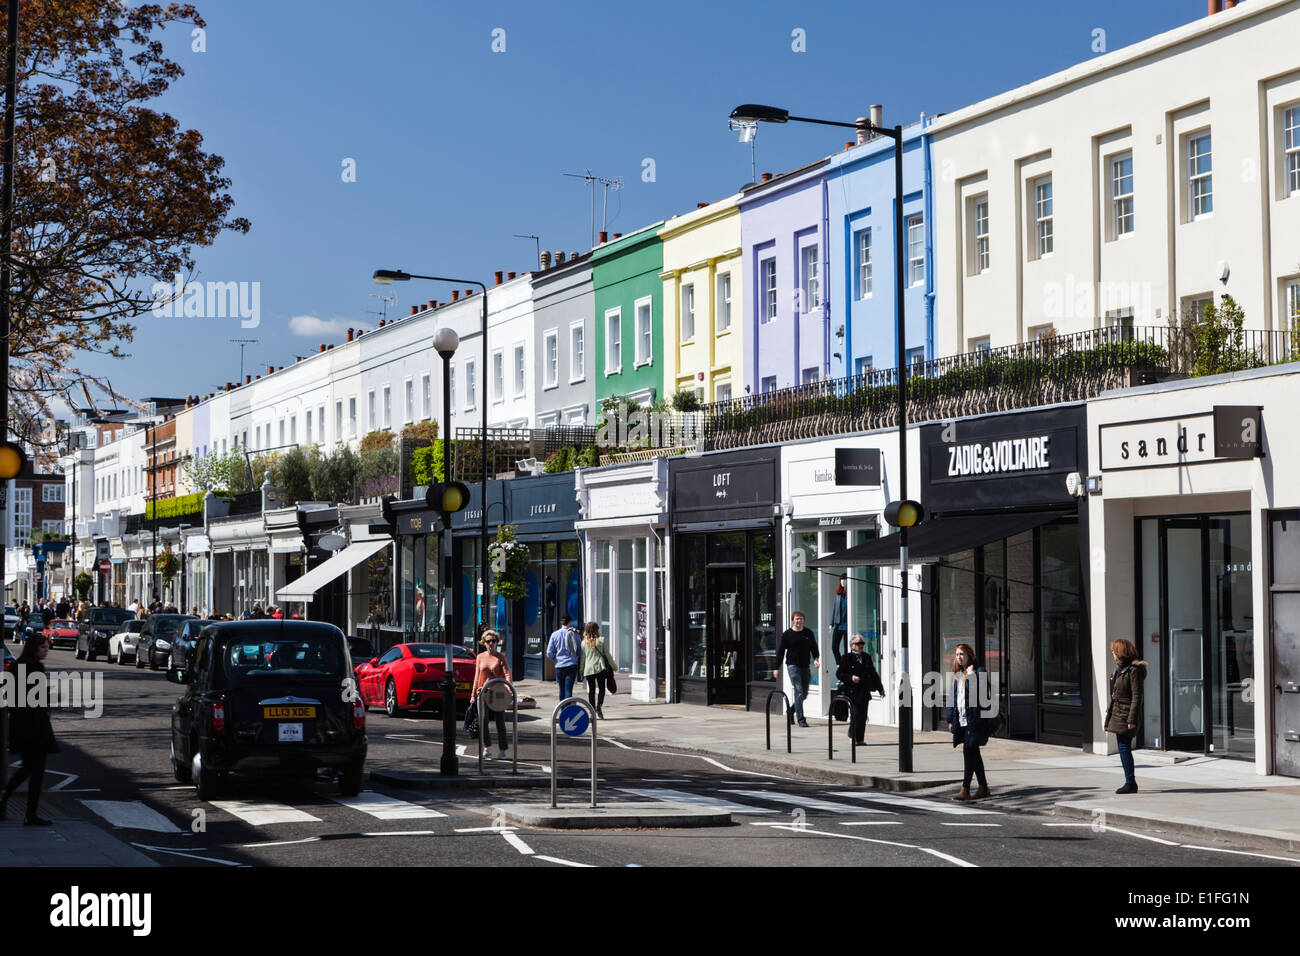 Notting Hill Ladbroke Grove westbourne grove london high resolution stock photography